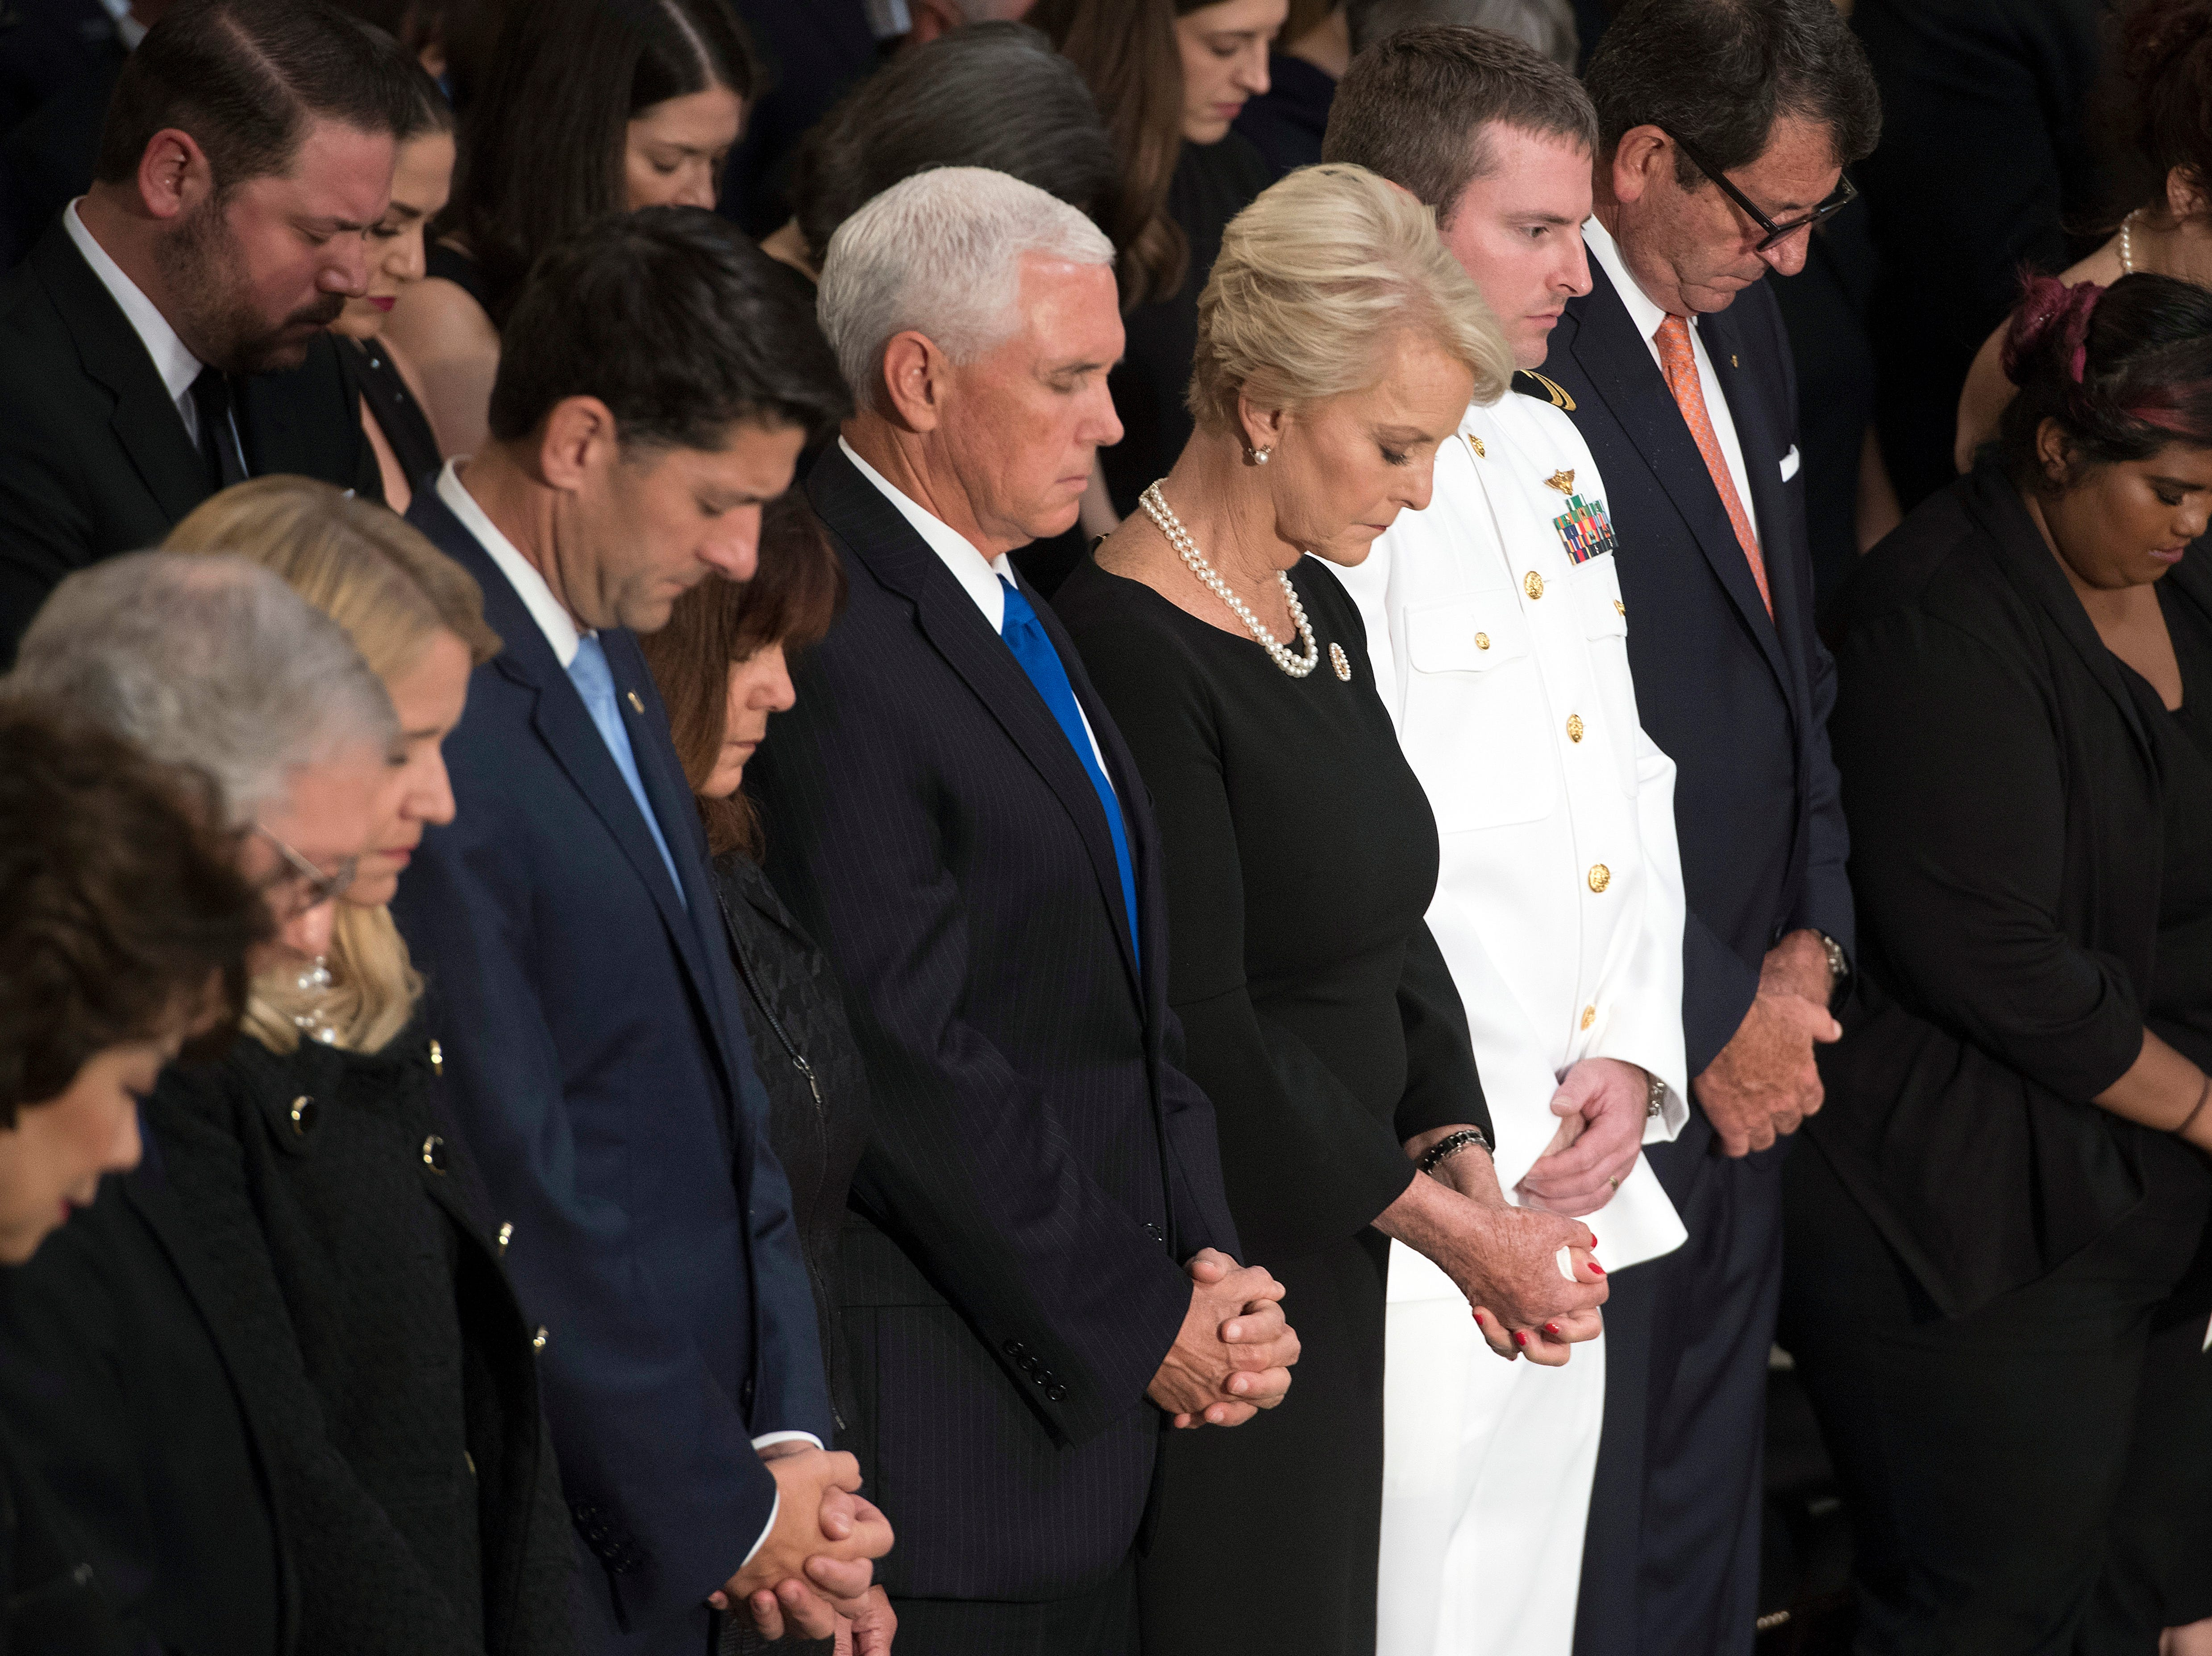 Cindy McCain, center, prays with Vice President Mike Pence and others during a farewell ceremony and public visitation for Sen. John McCain, R-Ariz., in Washington, Friday, Aug. 31, 2018. (Jim Watson/Pool photo via AP)